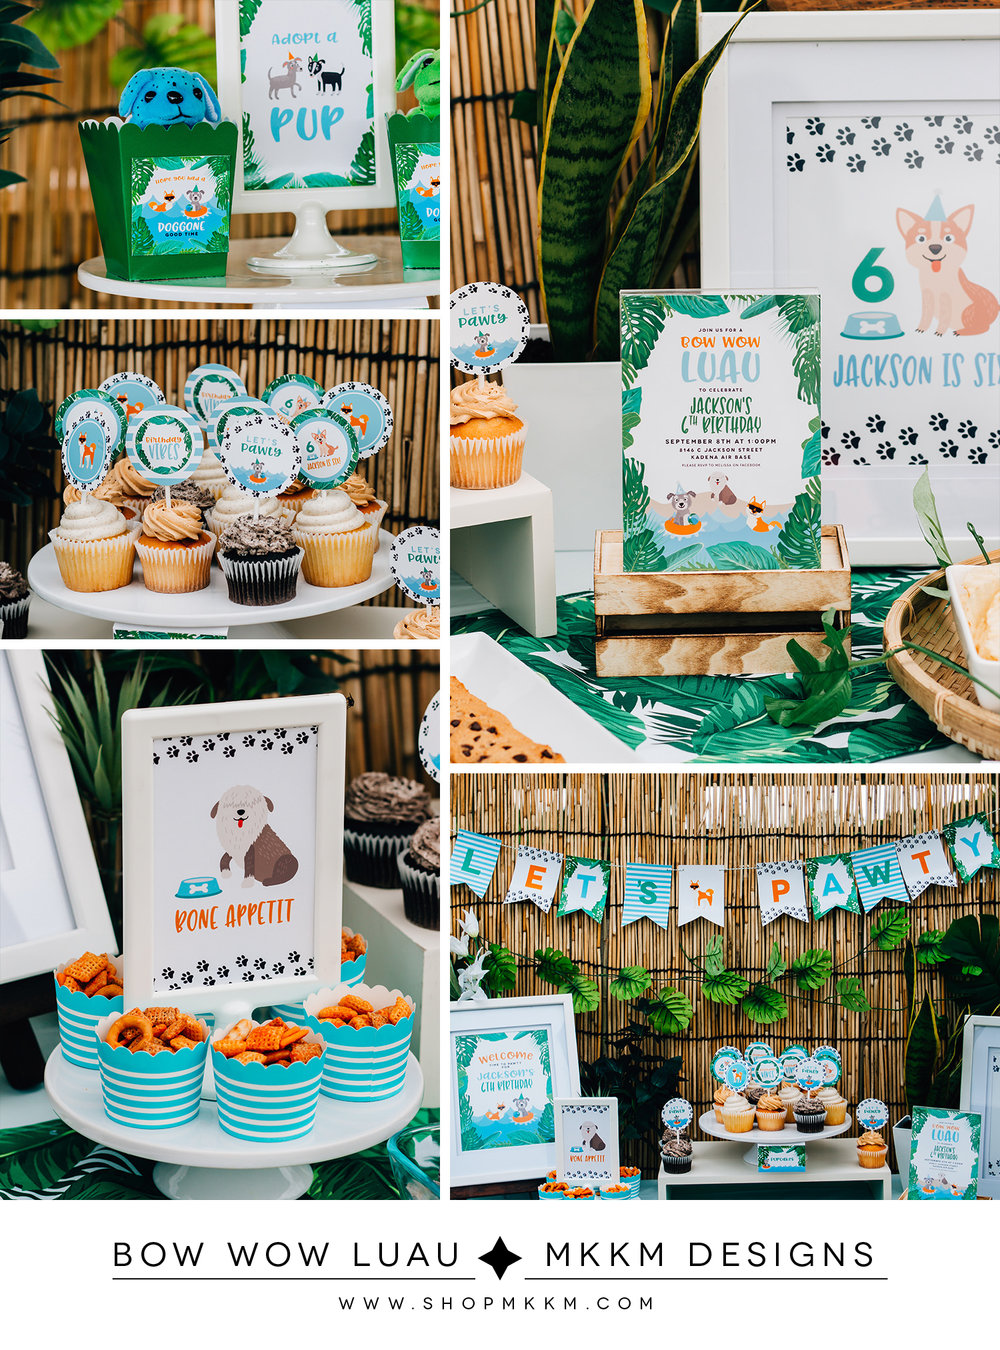 Bow Wow Luau, A Puppy party designed by MKKM Designs. Grab the free printable Adopt A Puppy signs and adoption certificate.